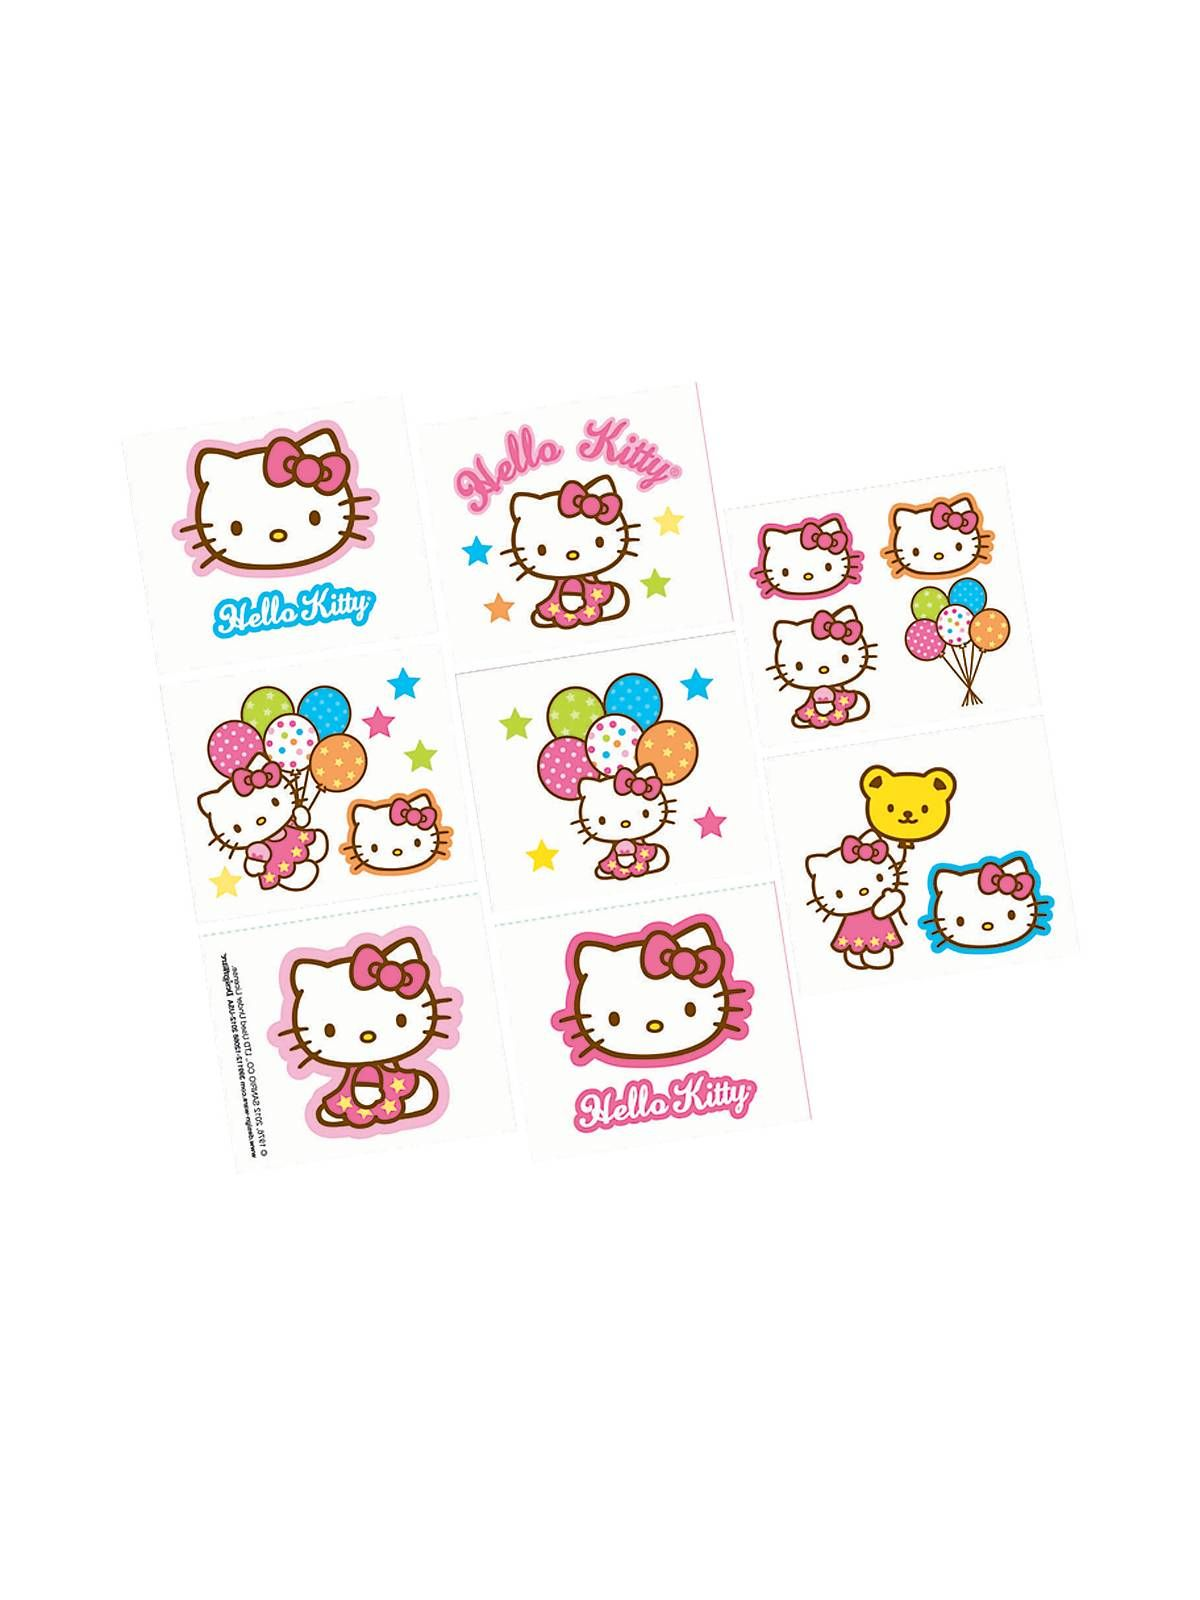 Bargain Party Decorations Hello Kitty Tattoos Bargain Party Decorations And Accessories